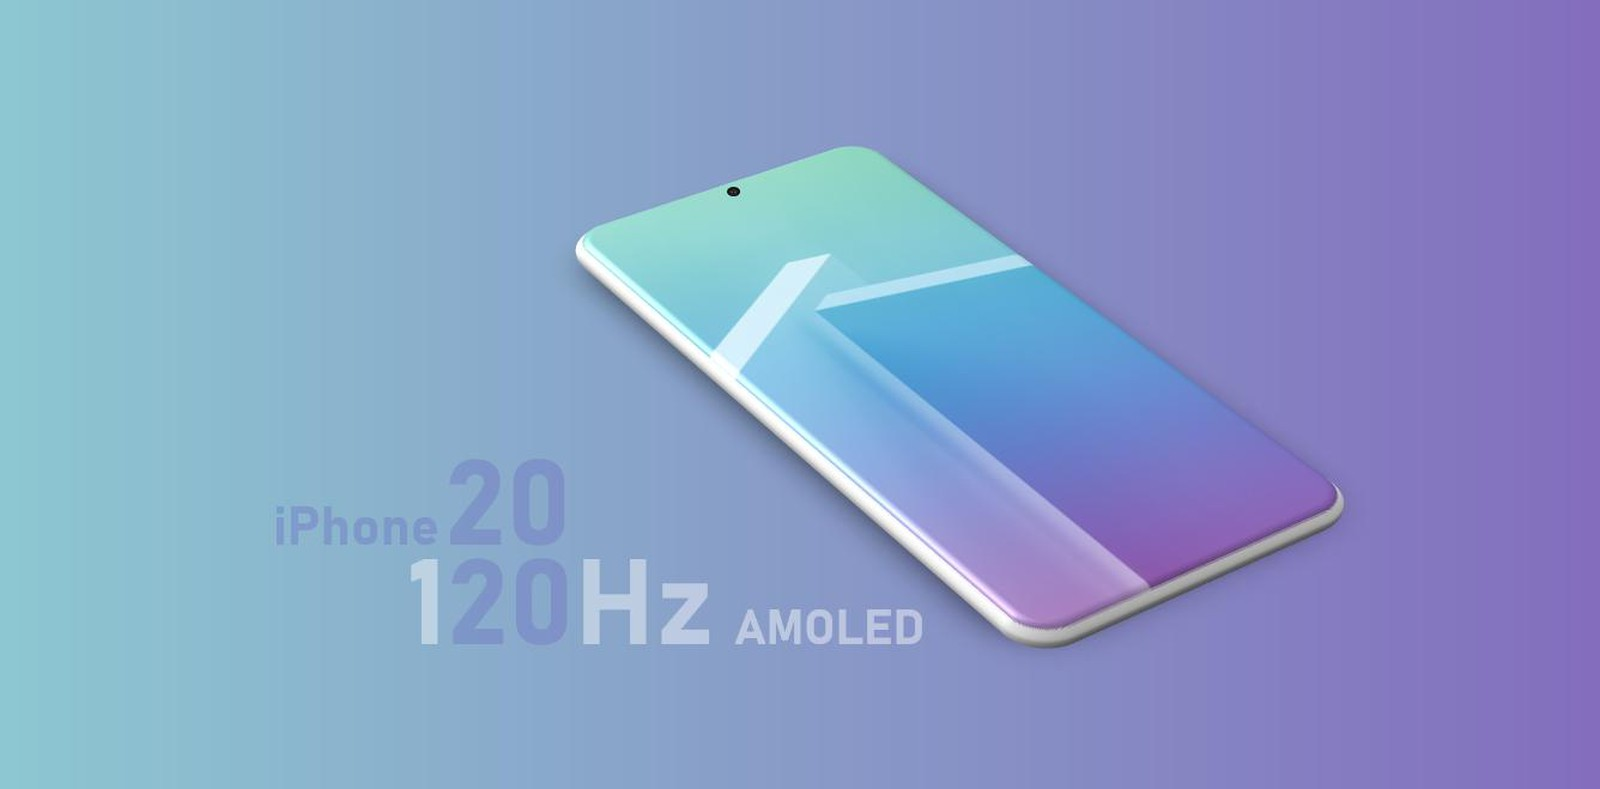 iPhone 12 Pro may come with 120Hz refresh rate screen-cnTechPost